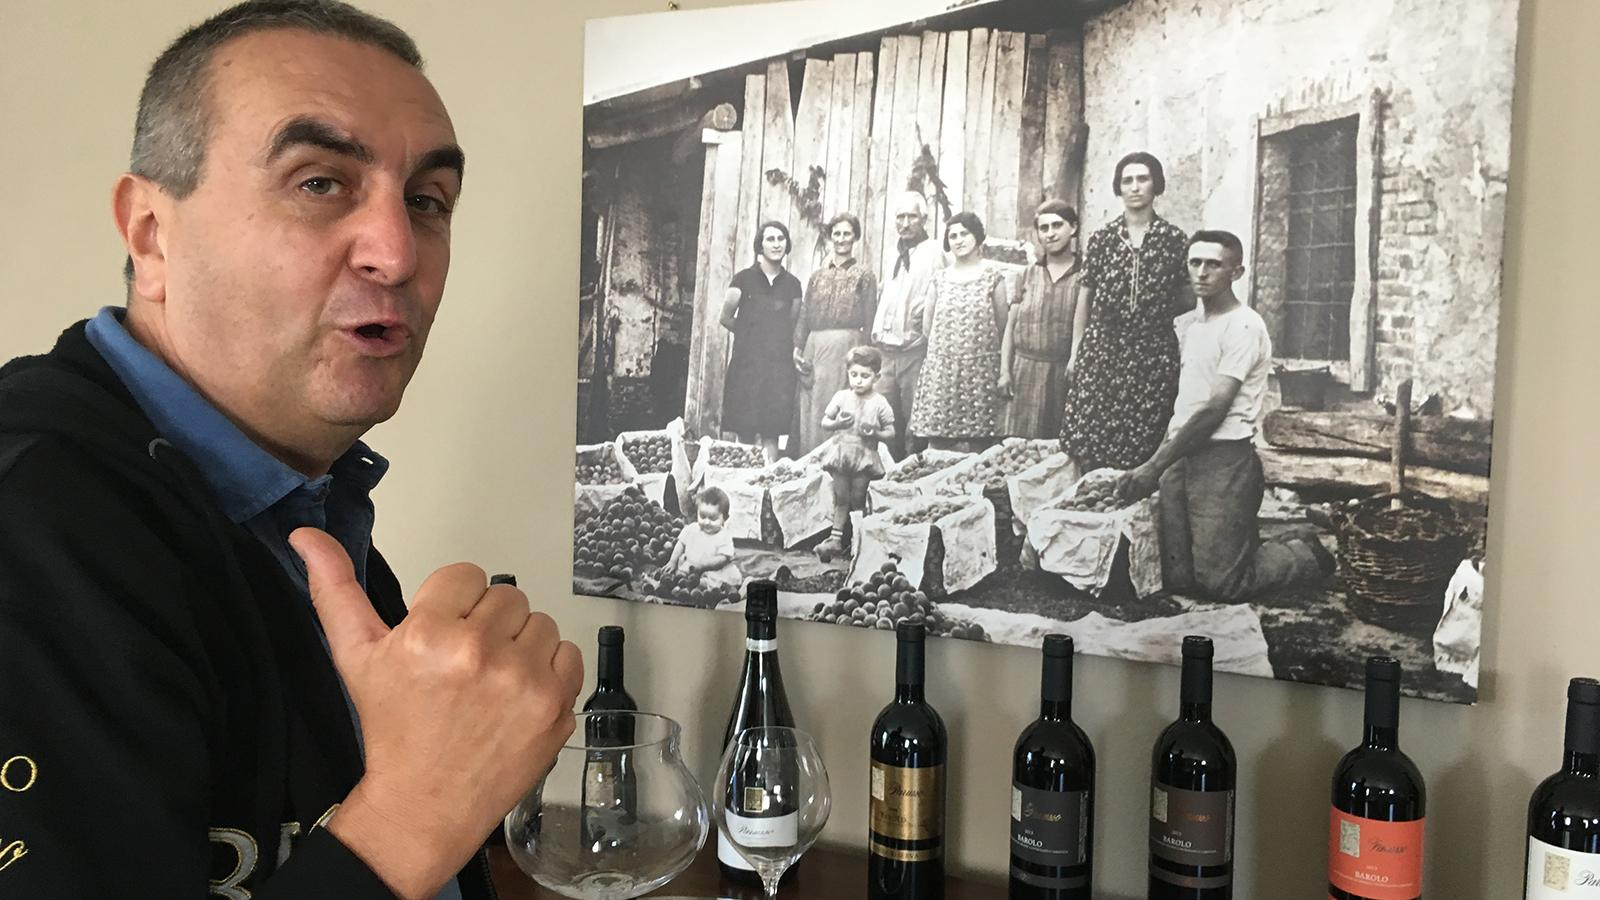 Marco Parusso with a photograph of his family from 1930. The young child standing is Marco's father and winery namesake Armando Parusso.